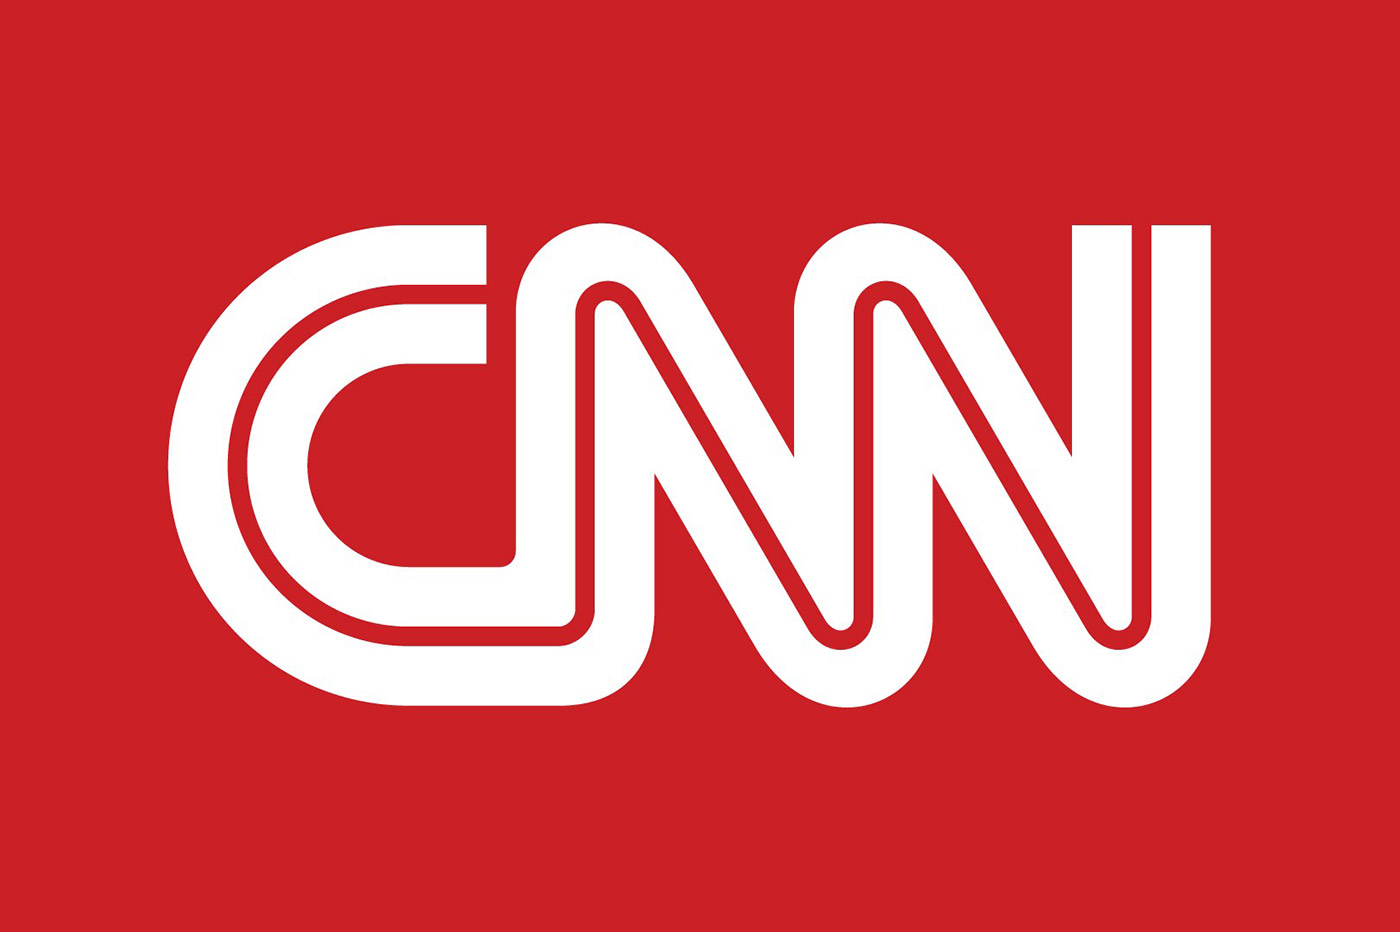 LOGOS IN THE NEWS: Helio Fred Garcia Quoted in CNN Business